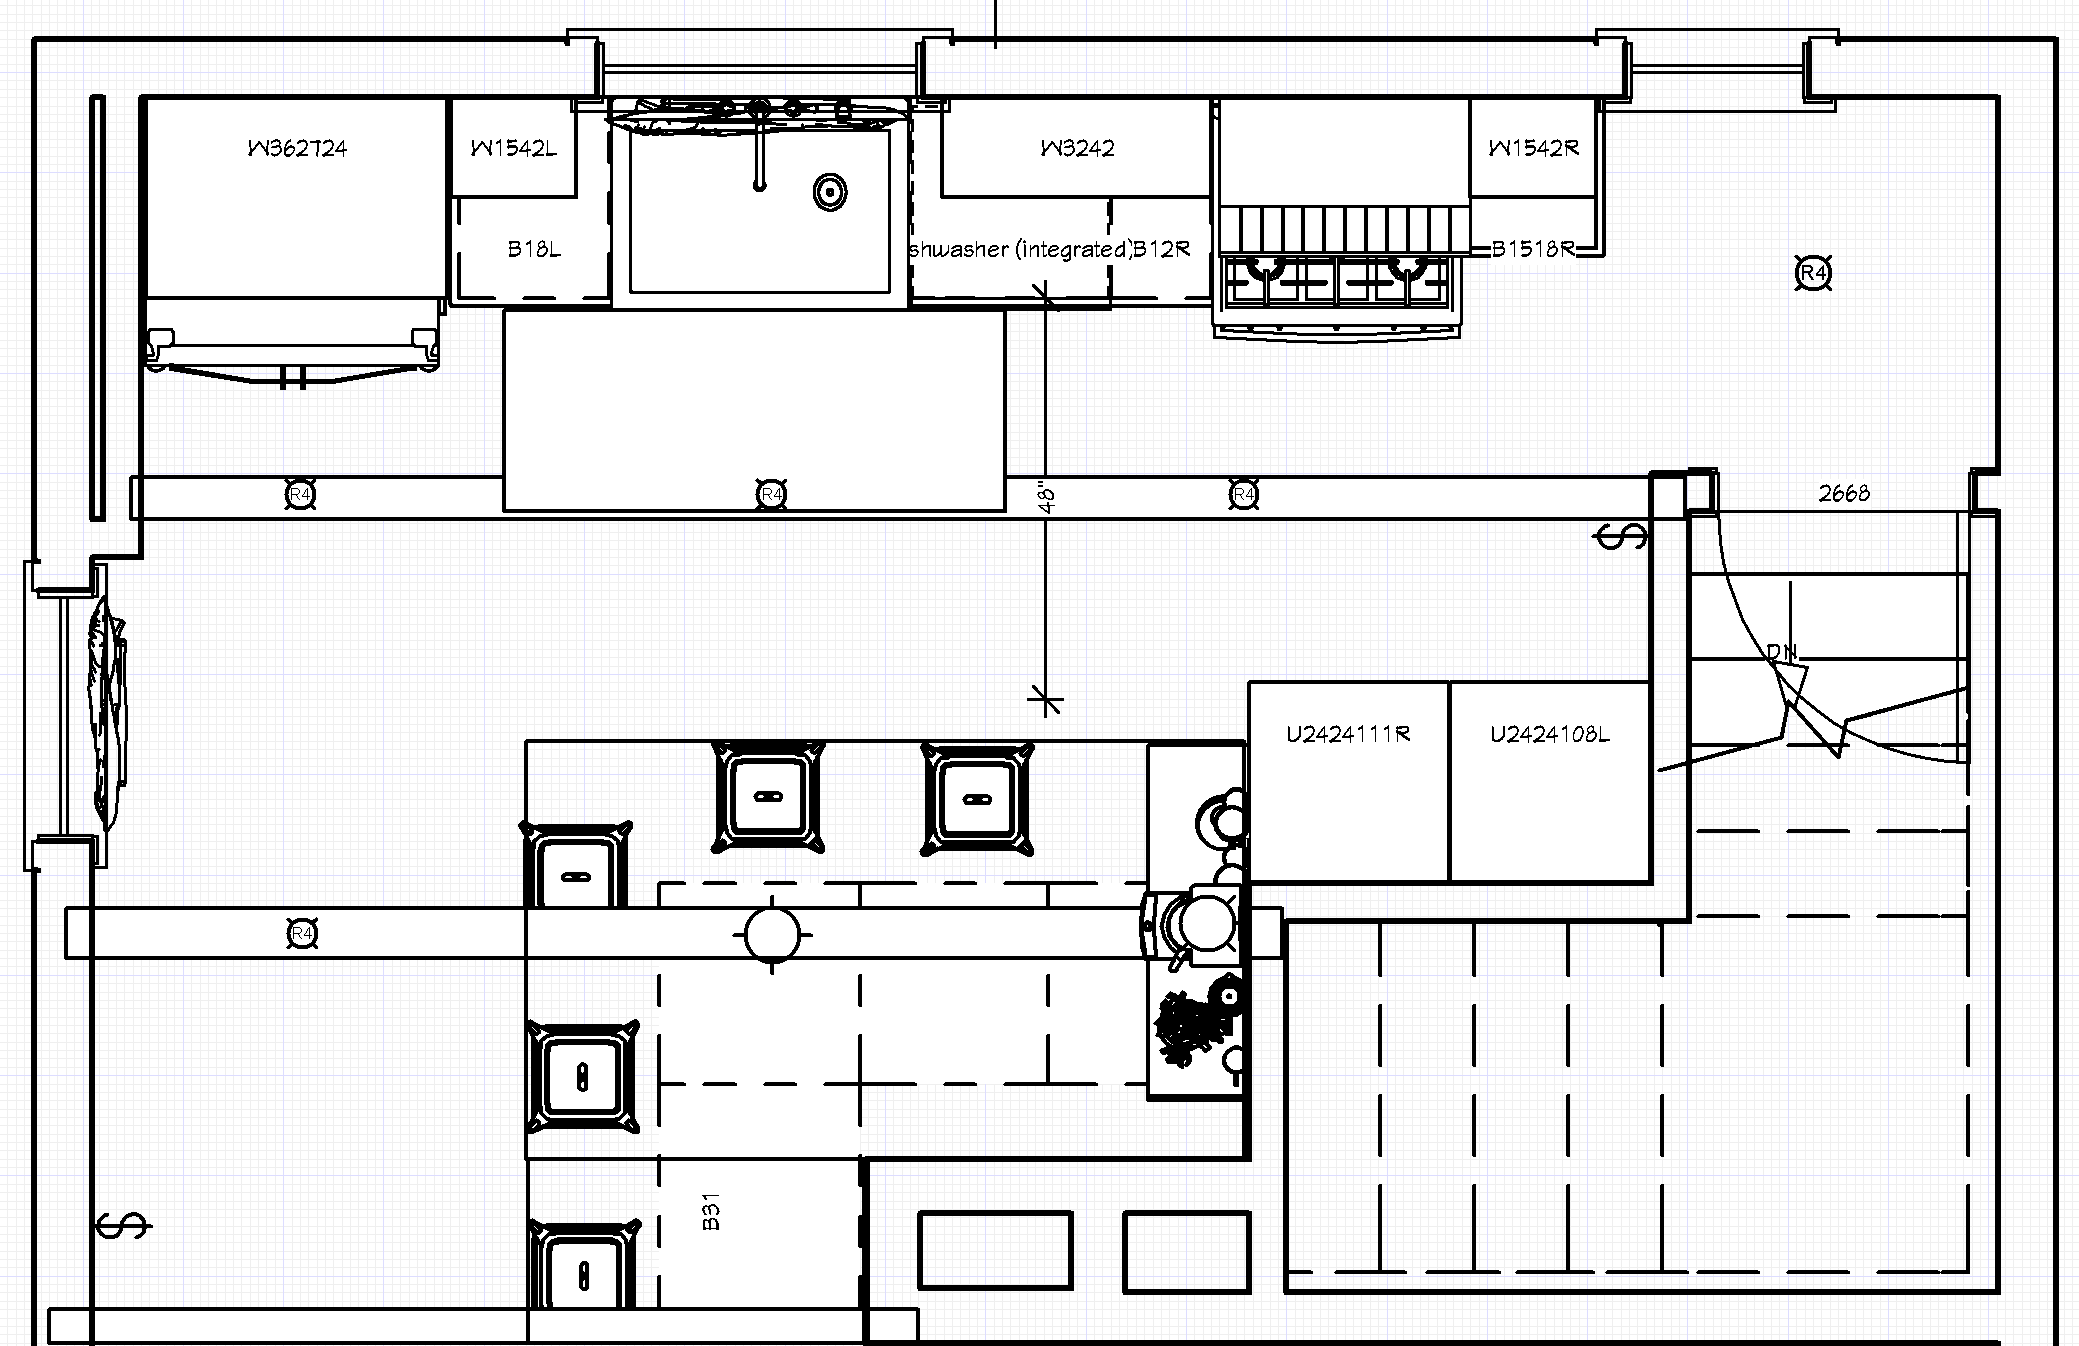 2D Floorplan Example - Kitchen Remodel